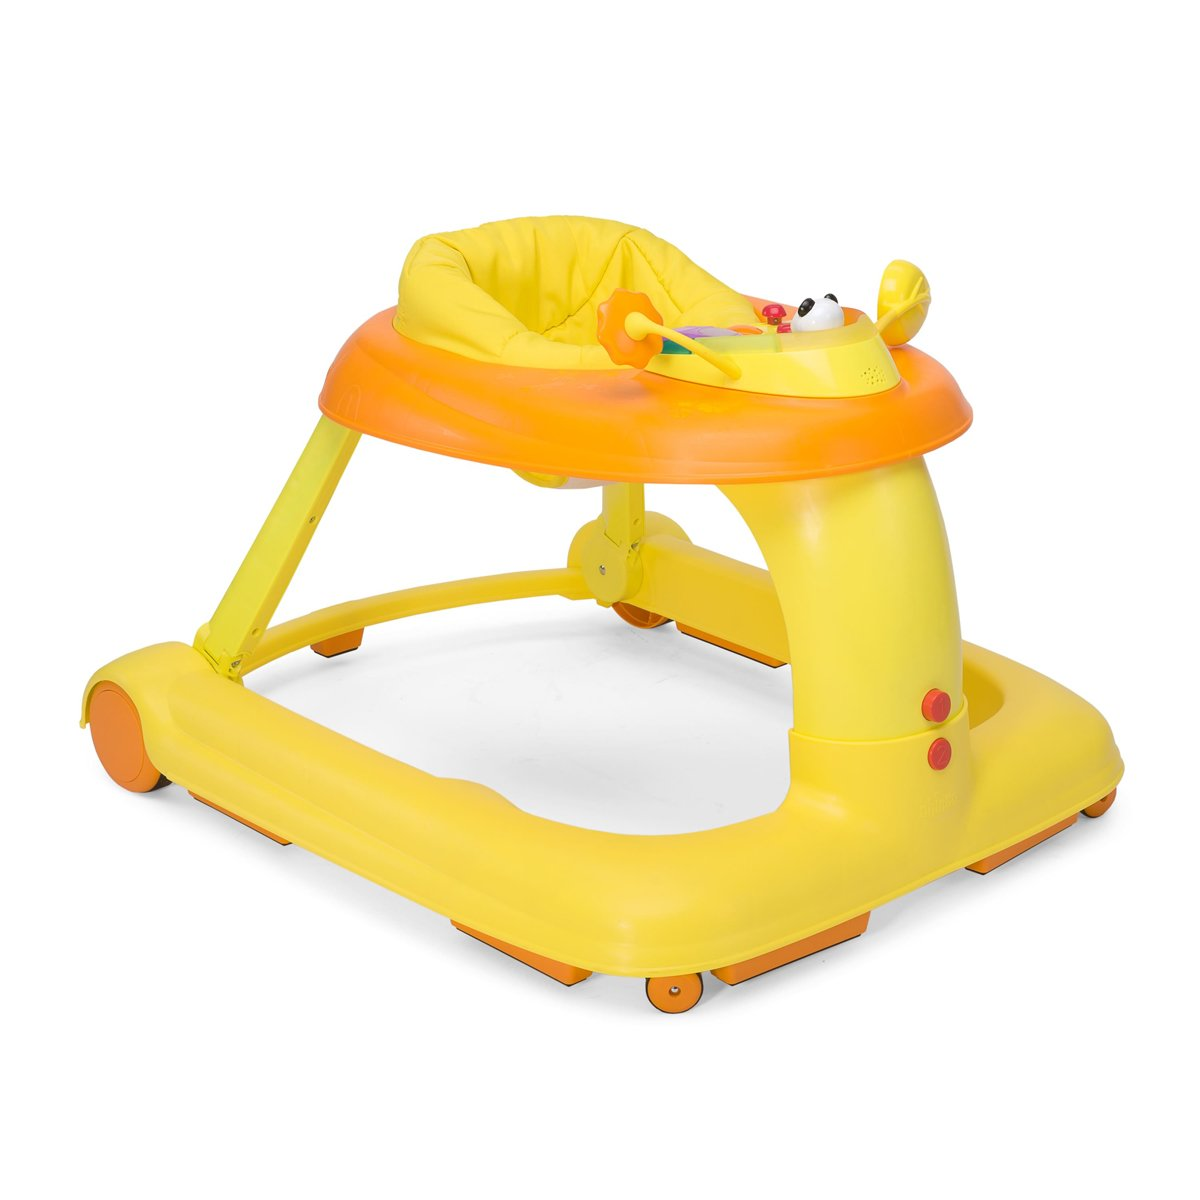 Chicco Trotteur 1 2 3 Orange  Amazon.fr  Bébés   Puériculture abdcfdfab72